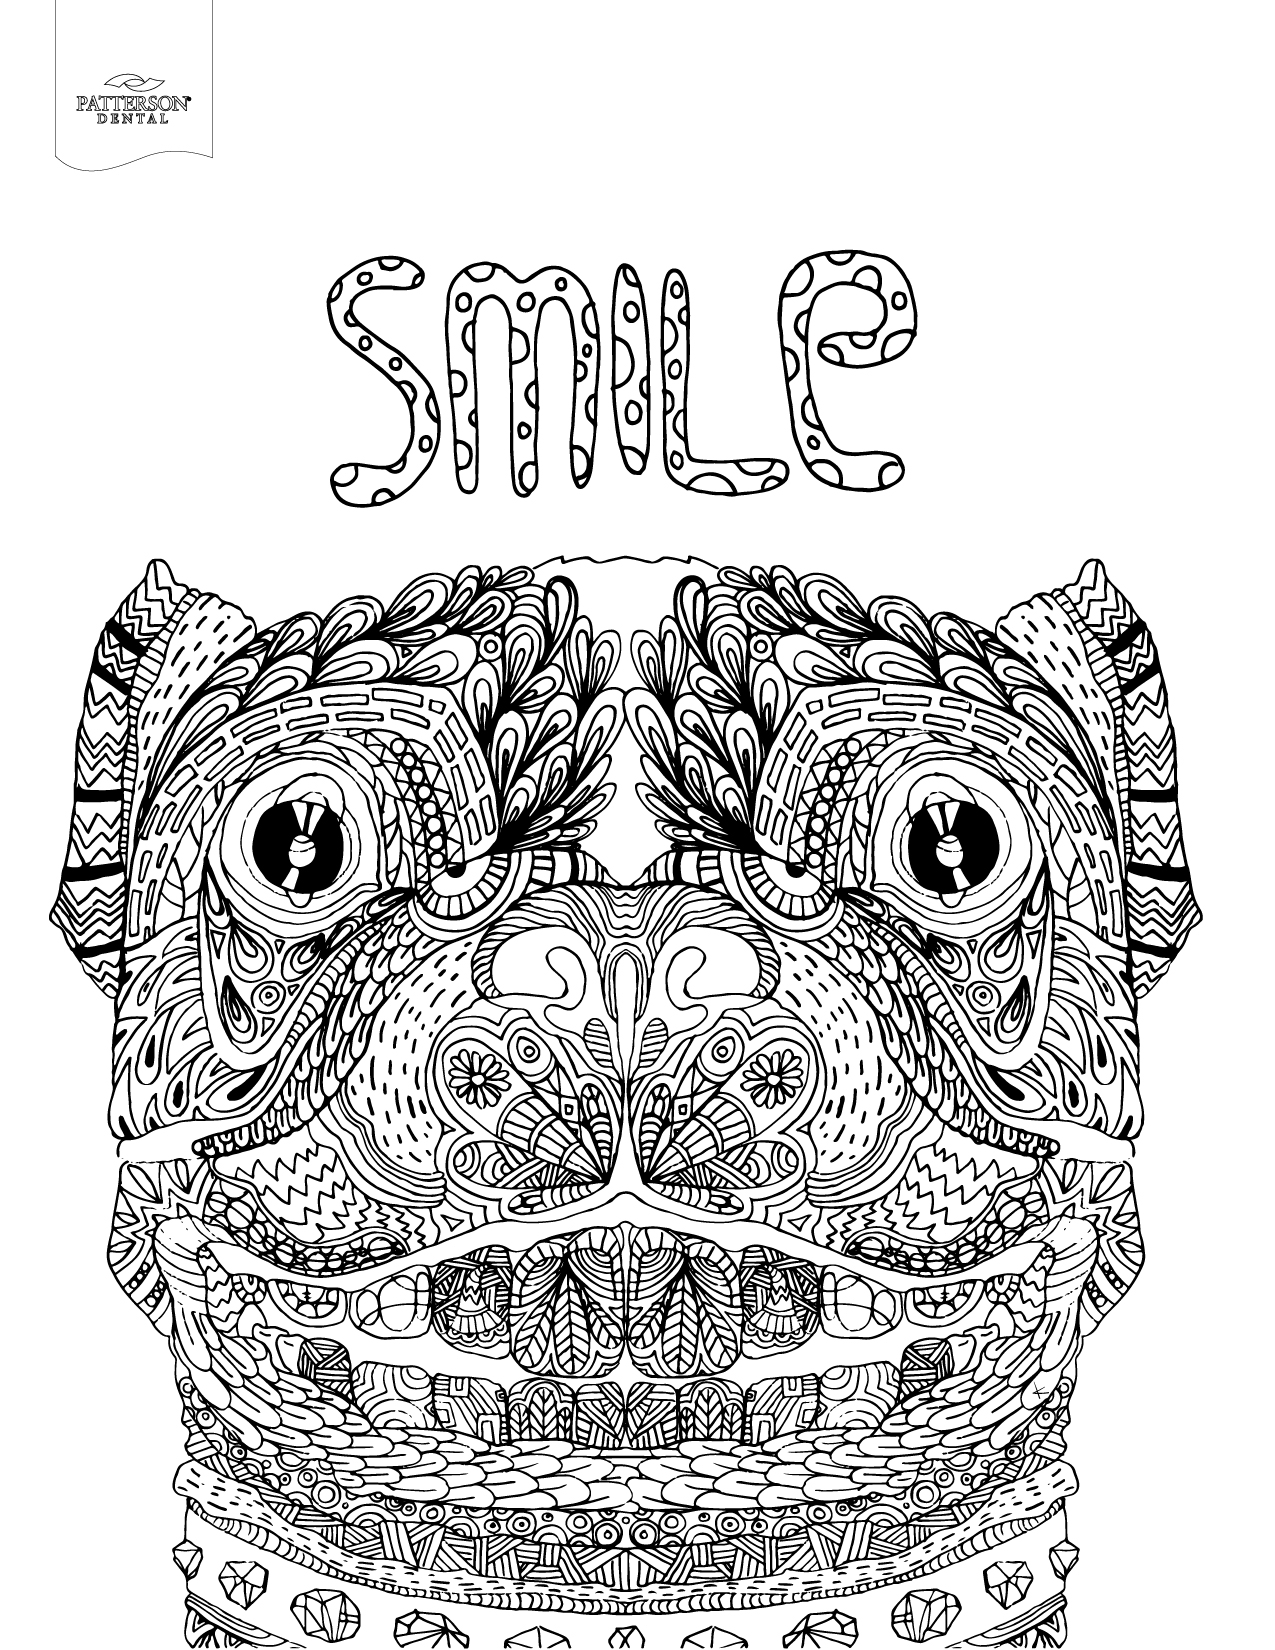 Colouring in pages dental - Smiling Dog Coloring Page From Patterson Dental